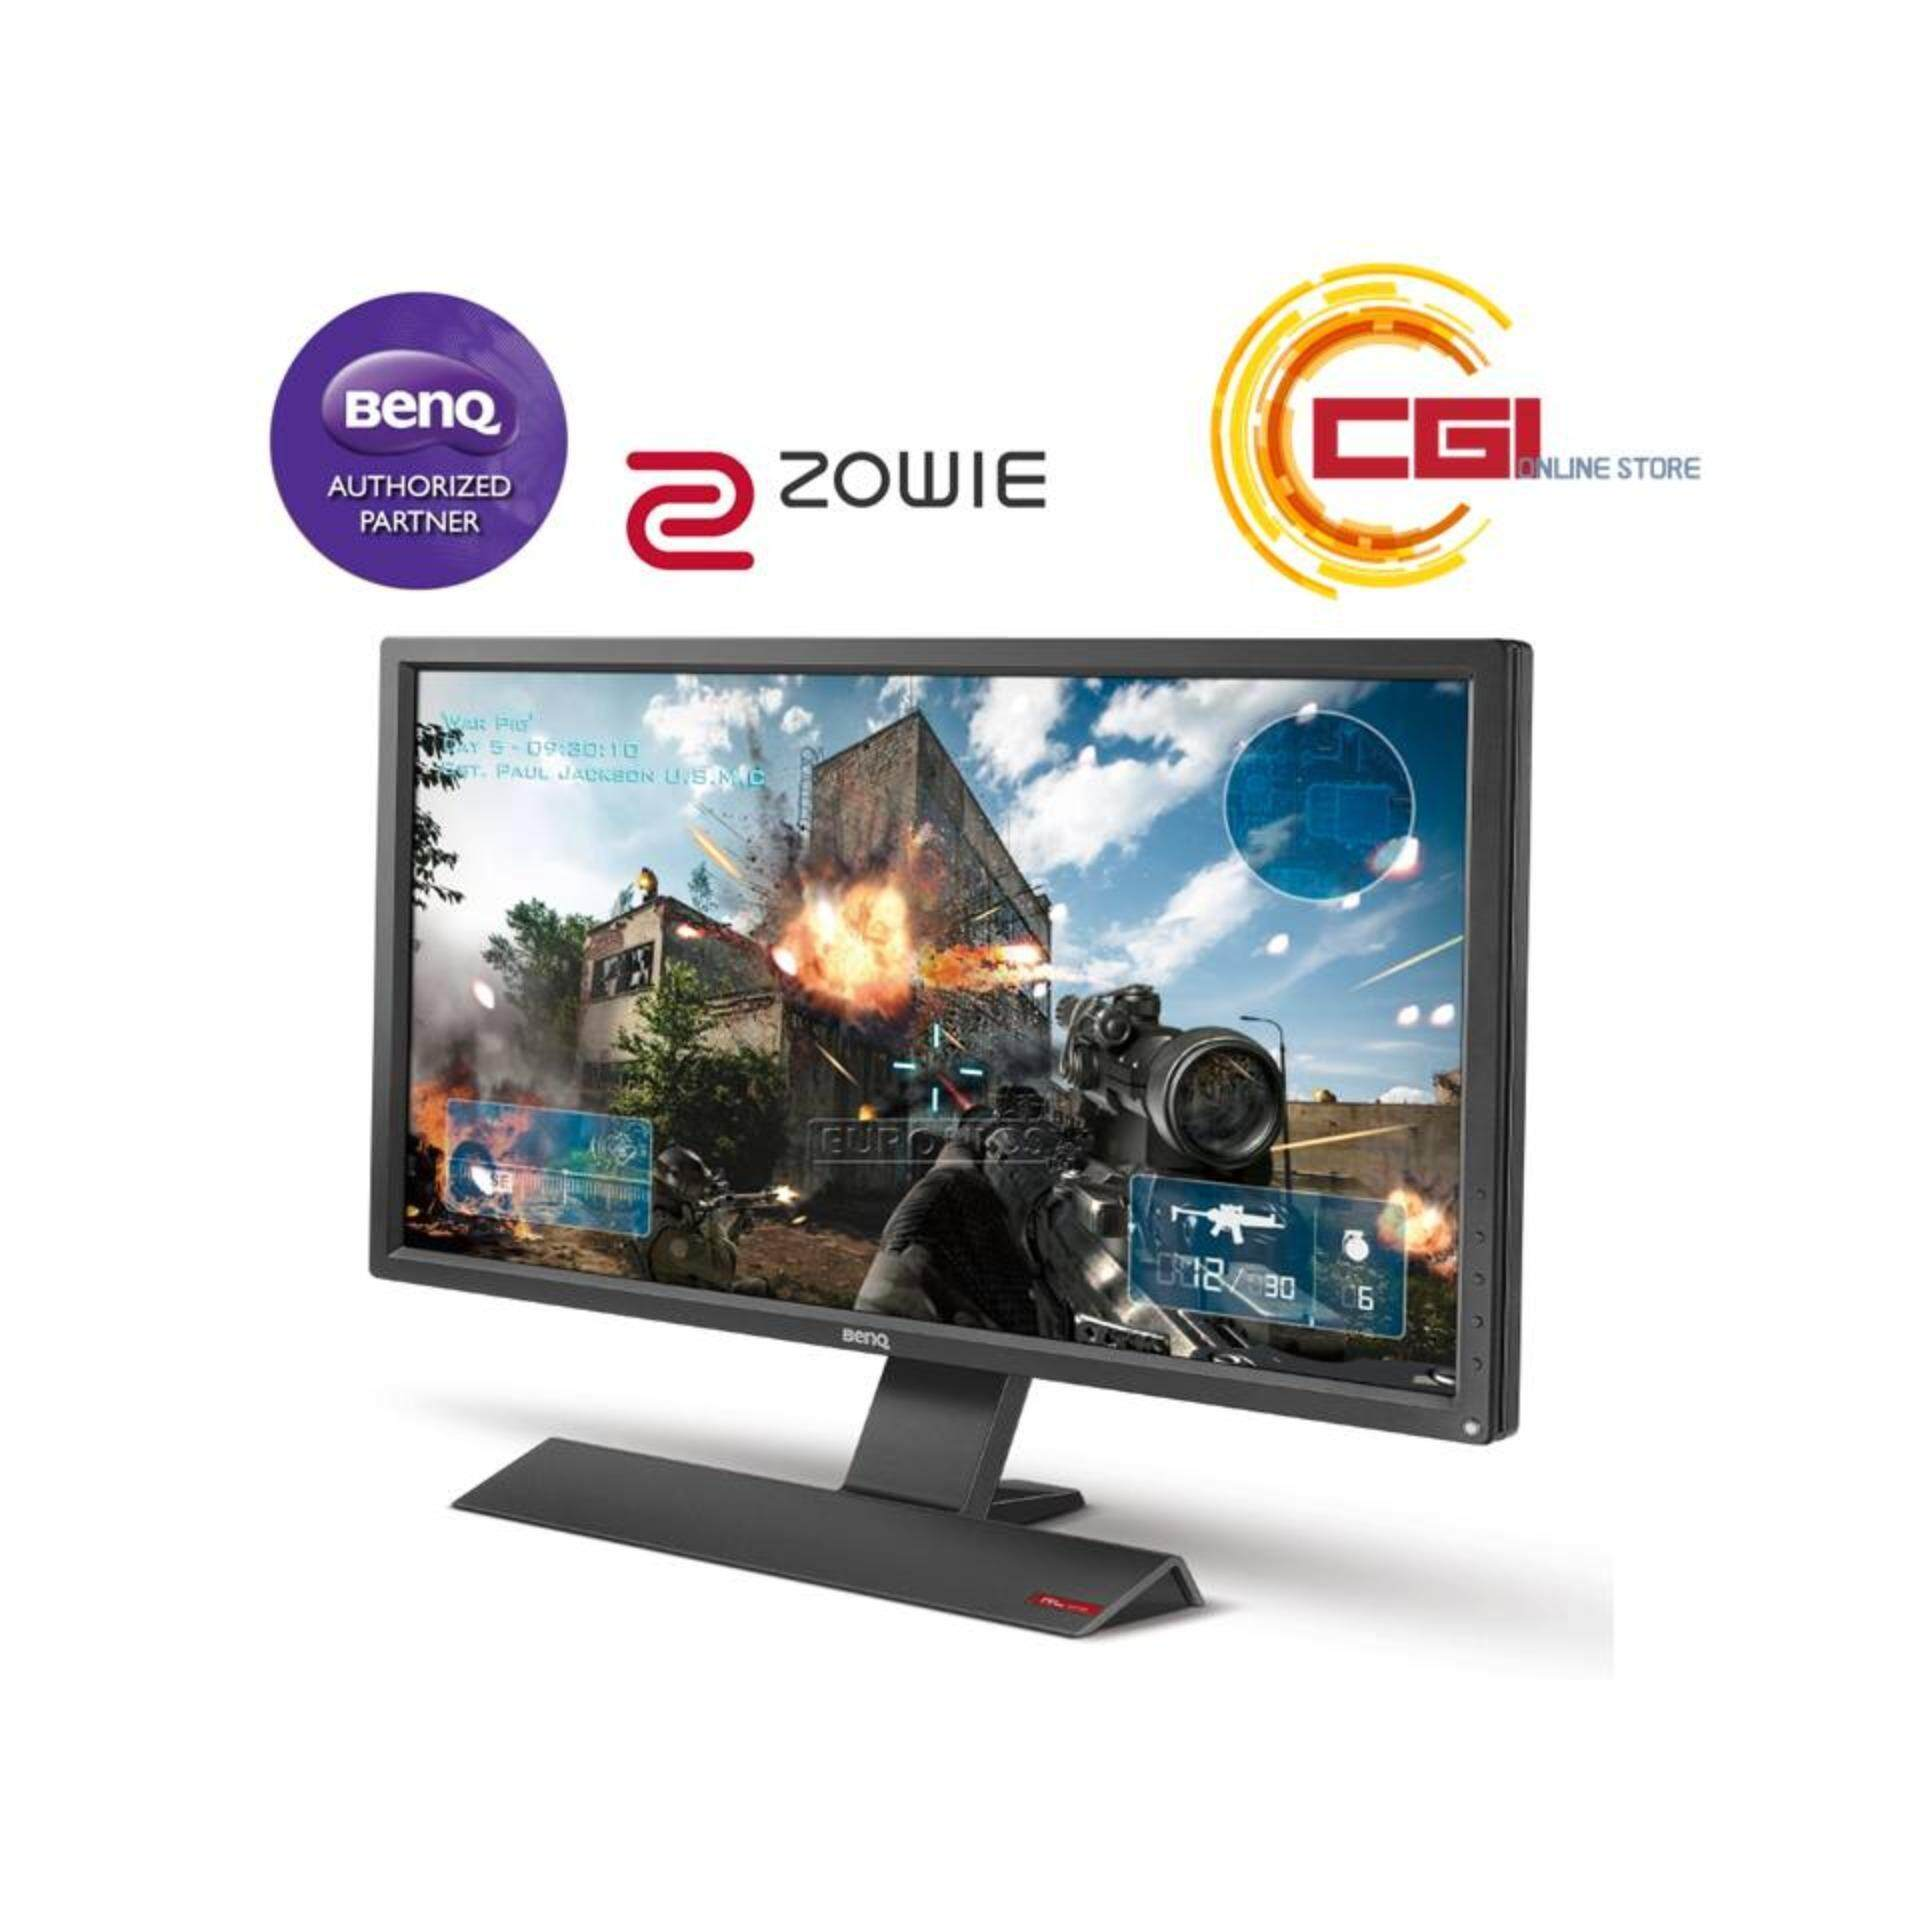 BenQ 27 RL2755 ZOWIE Console e-Sports Gaming LED Monitor Malaysia